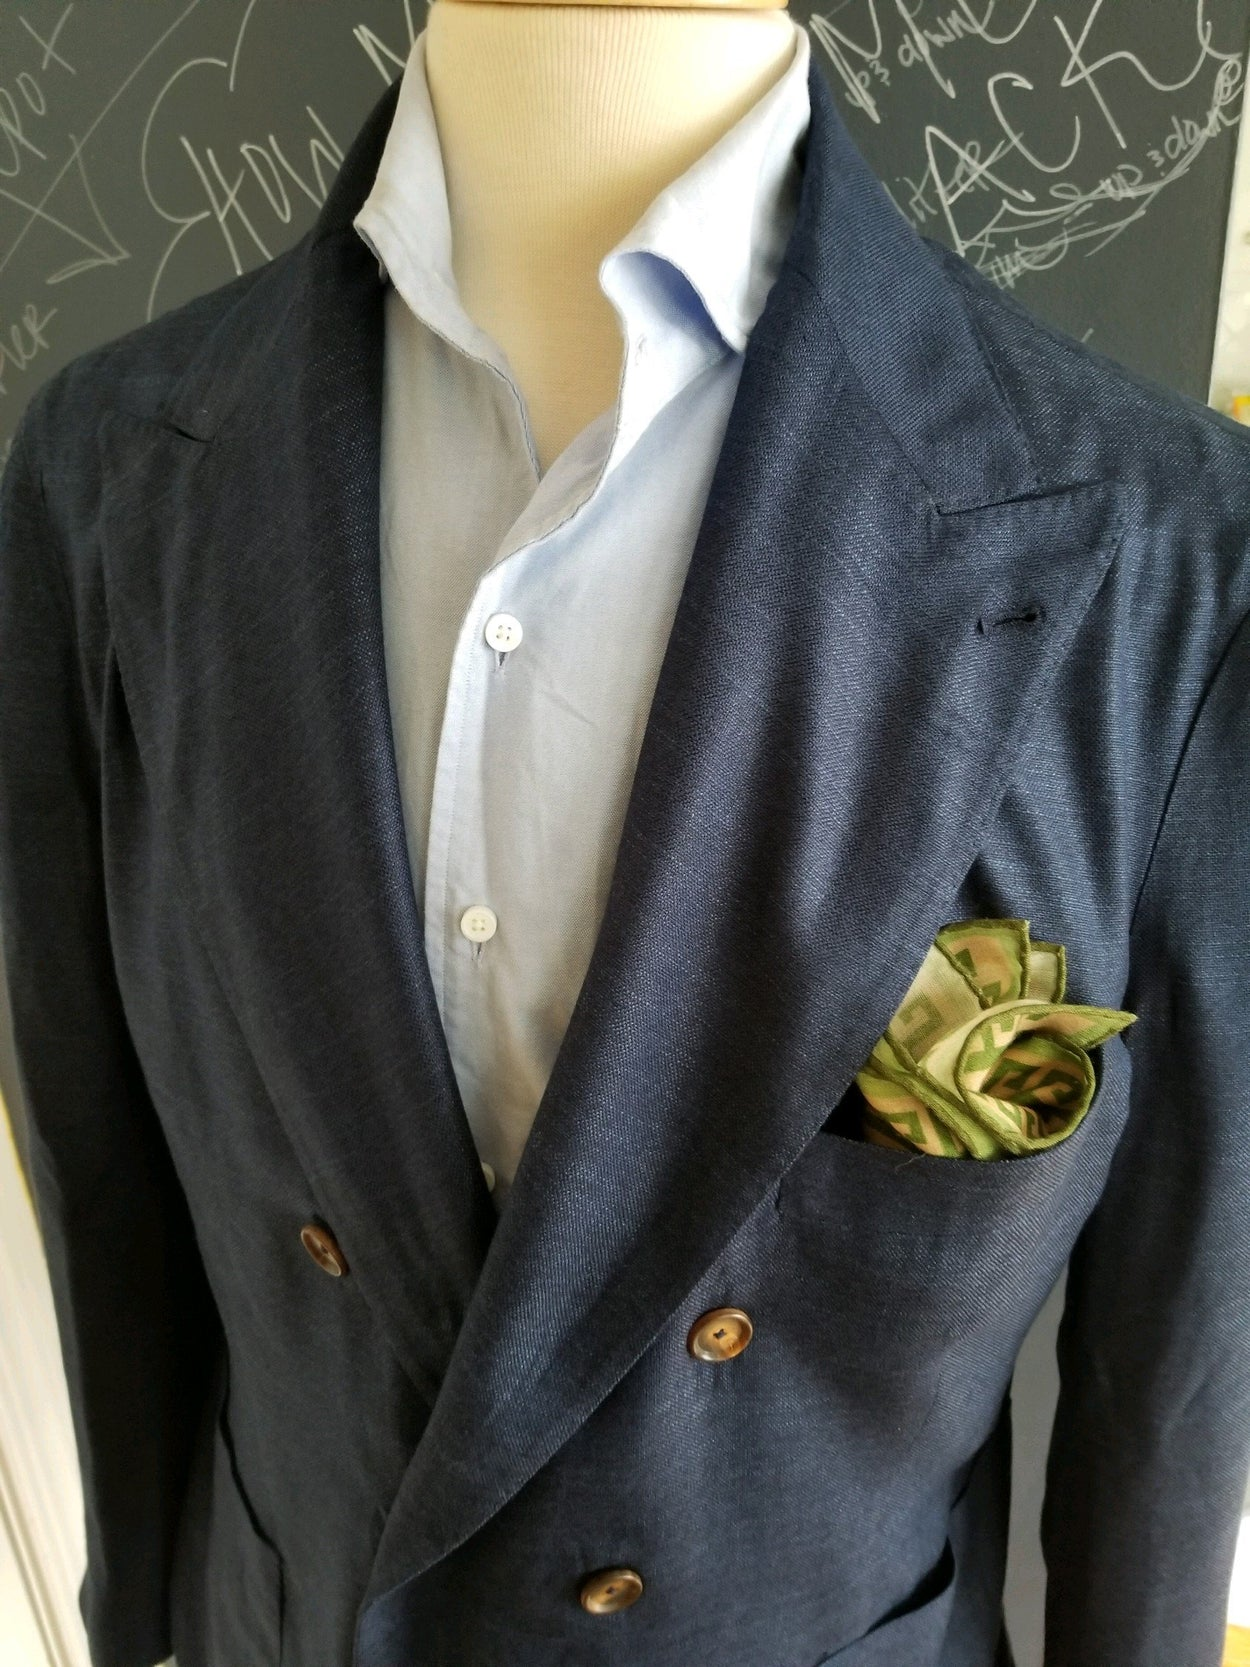 Unstructured Neapolitan Double Breasted Sport Coat/Blazer - Royal Blue 40R